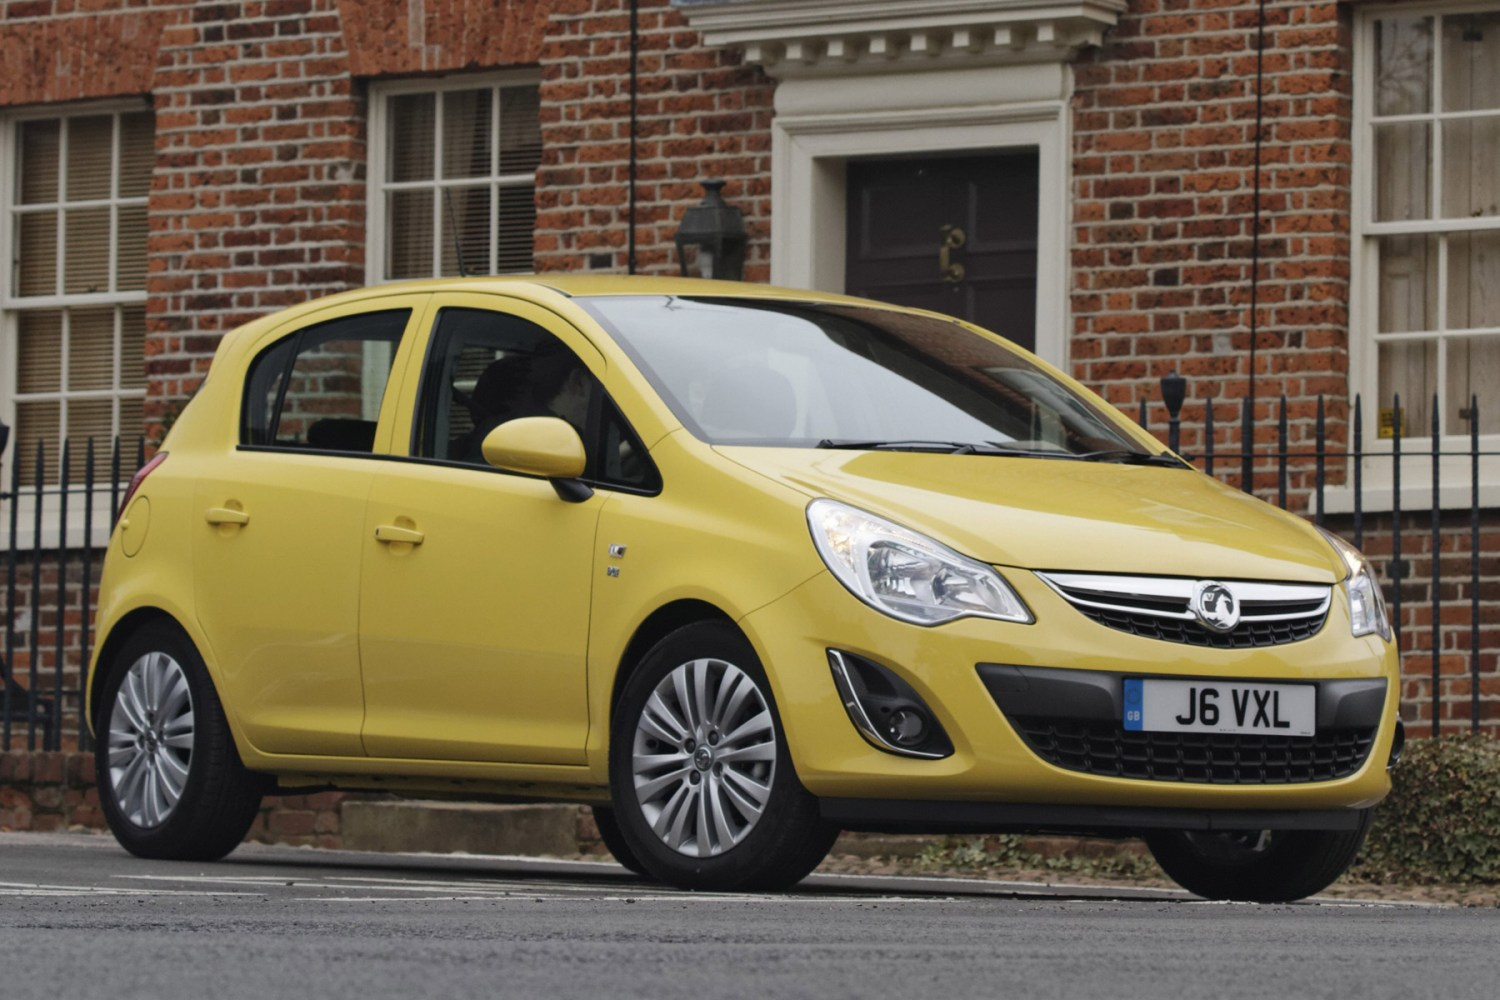 Man takes legal action after winning a Vauxhall Corsa